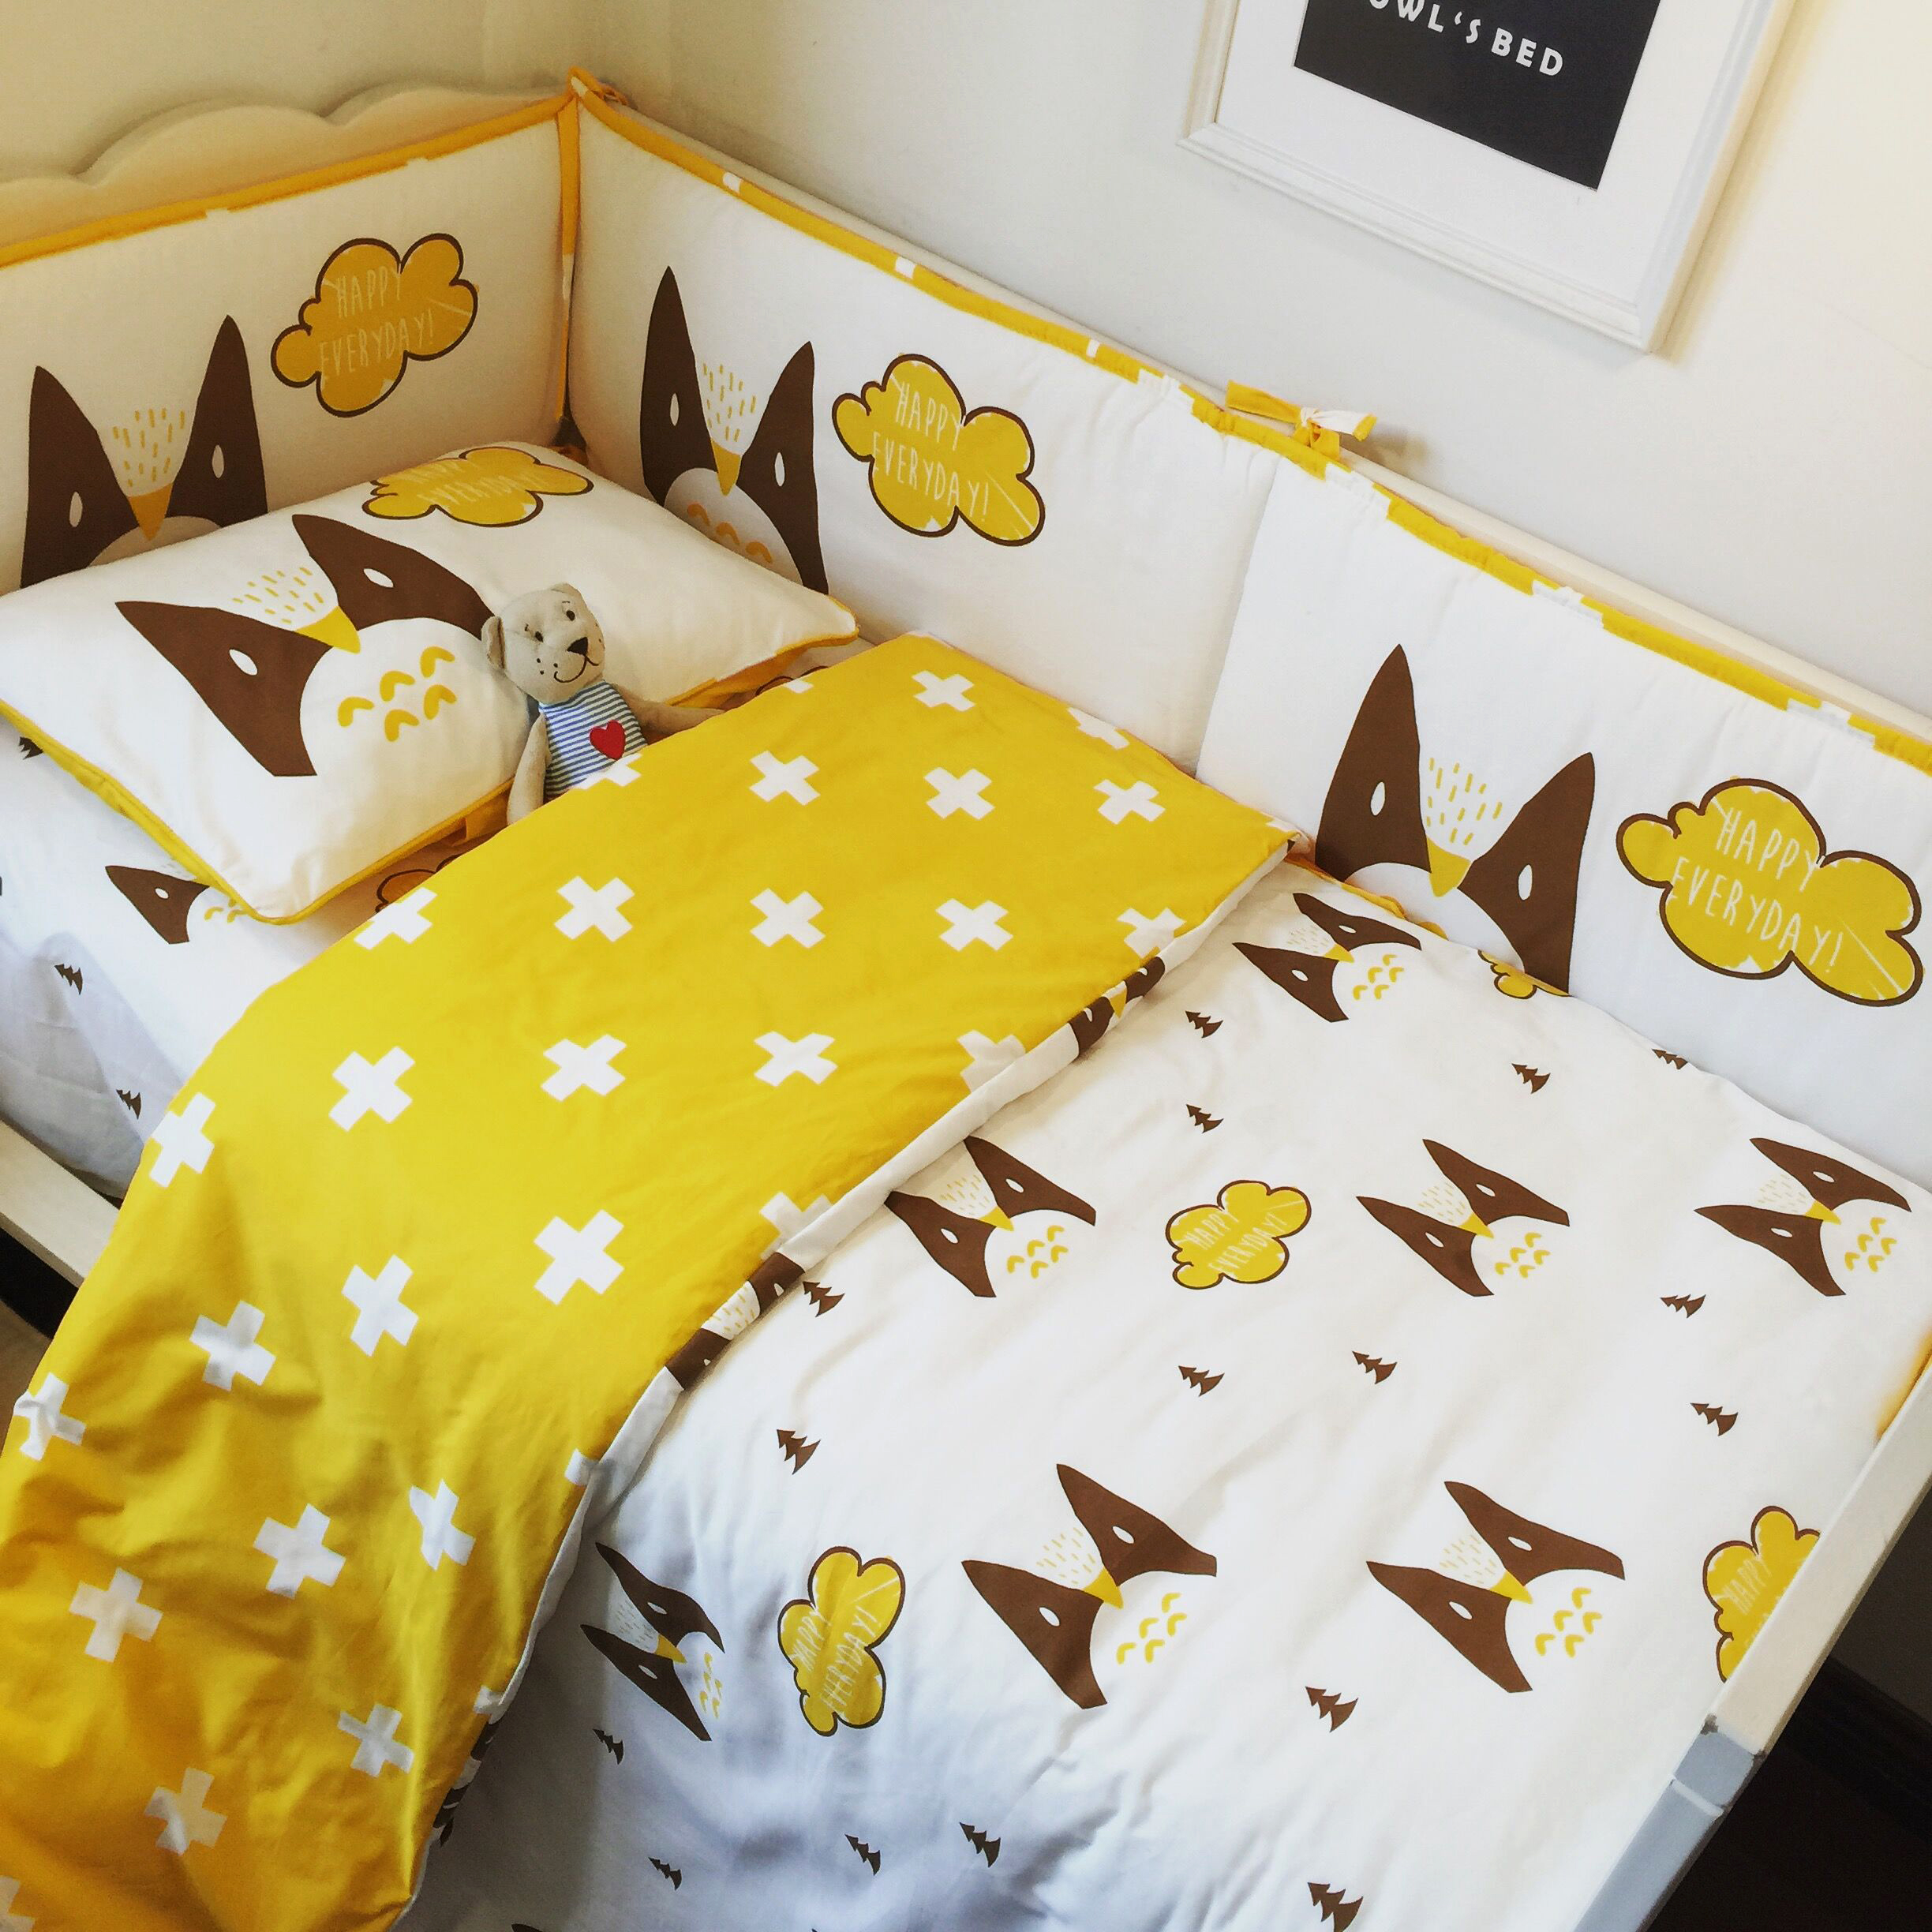 Baby bed sheet pattern - Aliexpress Com Buy Baby Bedding Sets 3pcs Cute No Stimulation Cotton Cartoon Pattern Baby Quilt Bed Sheets Pillowcase Bedding Newborn Decorations From